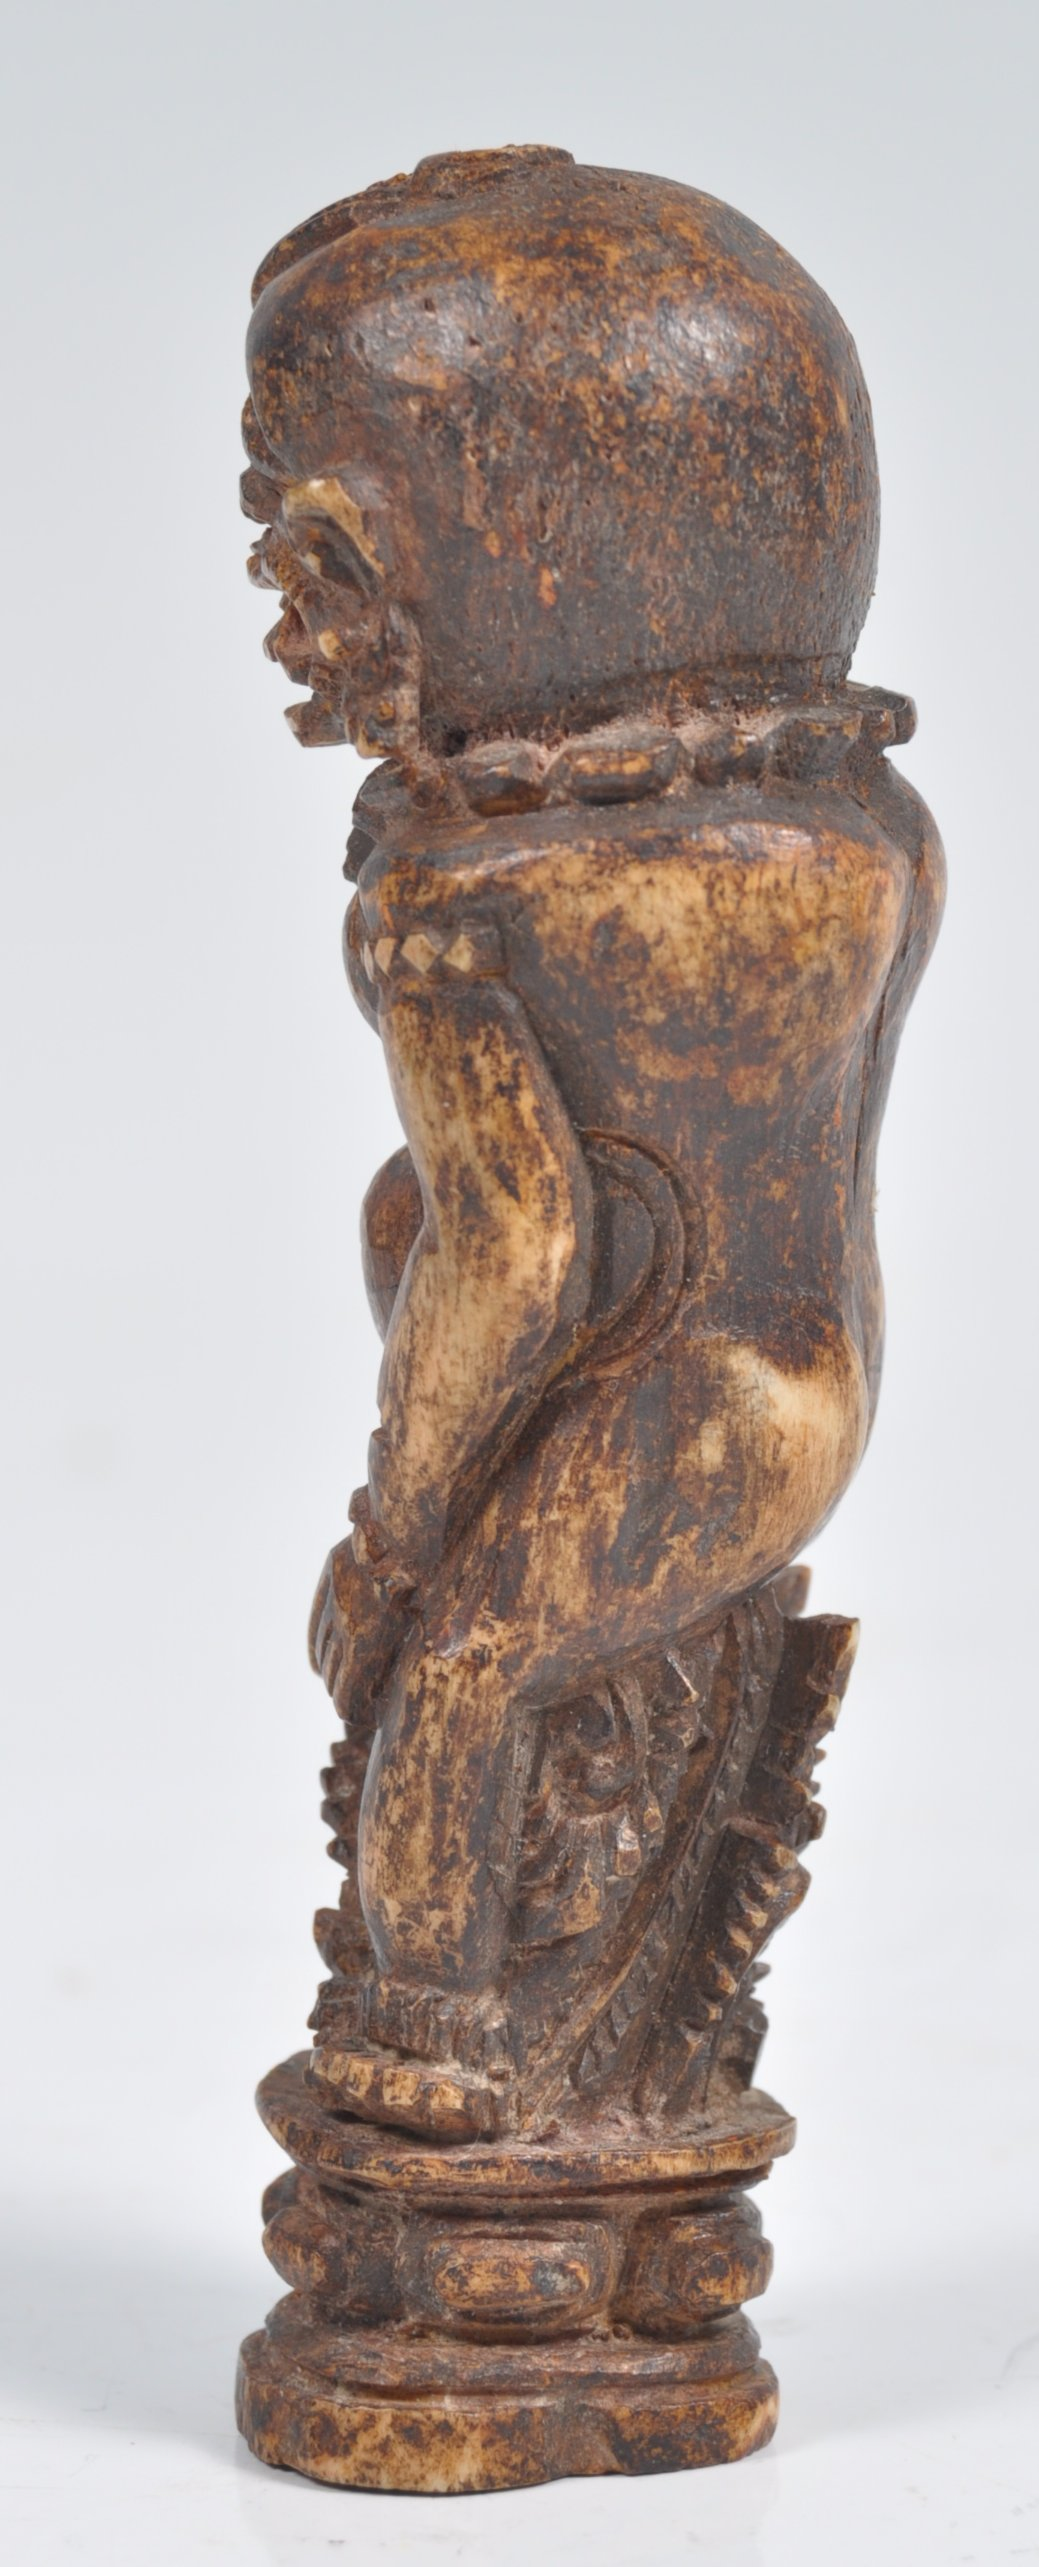 Lot 195 - UNUSUAL INDONESIAN CARVED BONE SCULPTURE OF AN ANCIENT DEITY